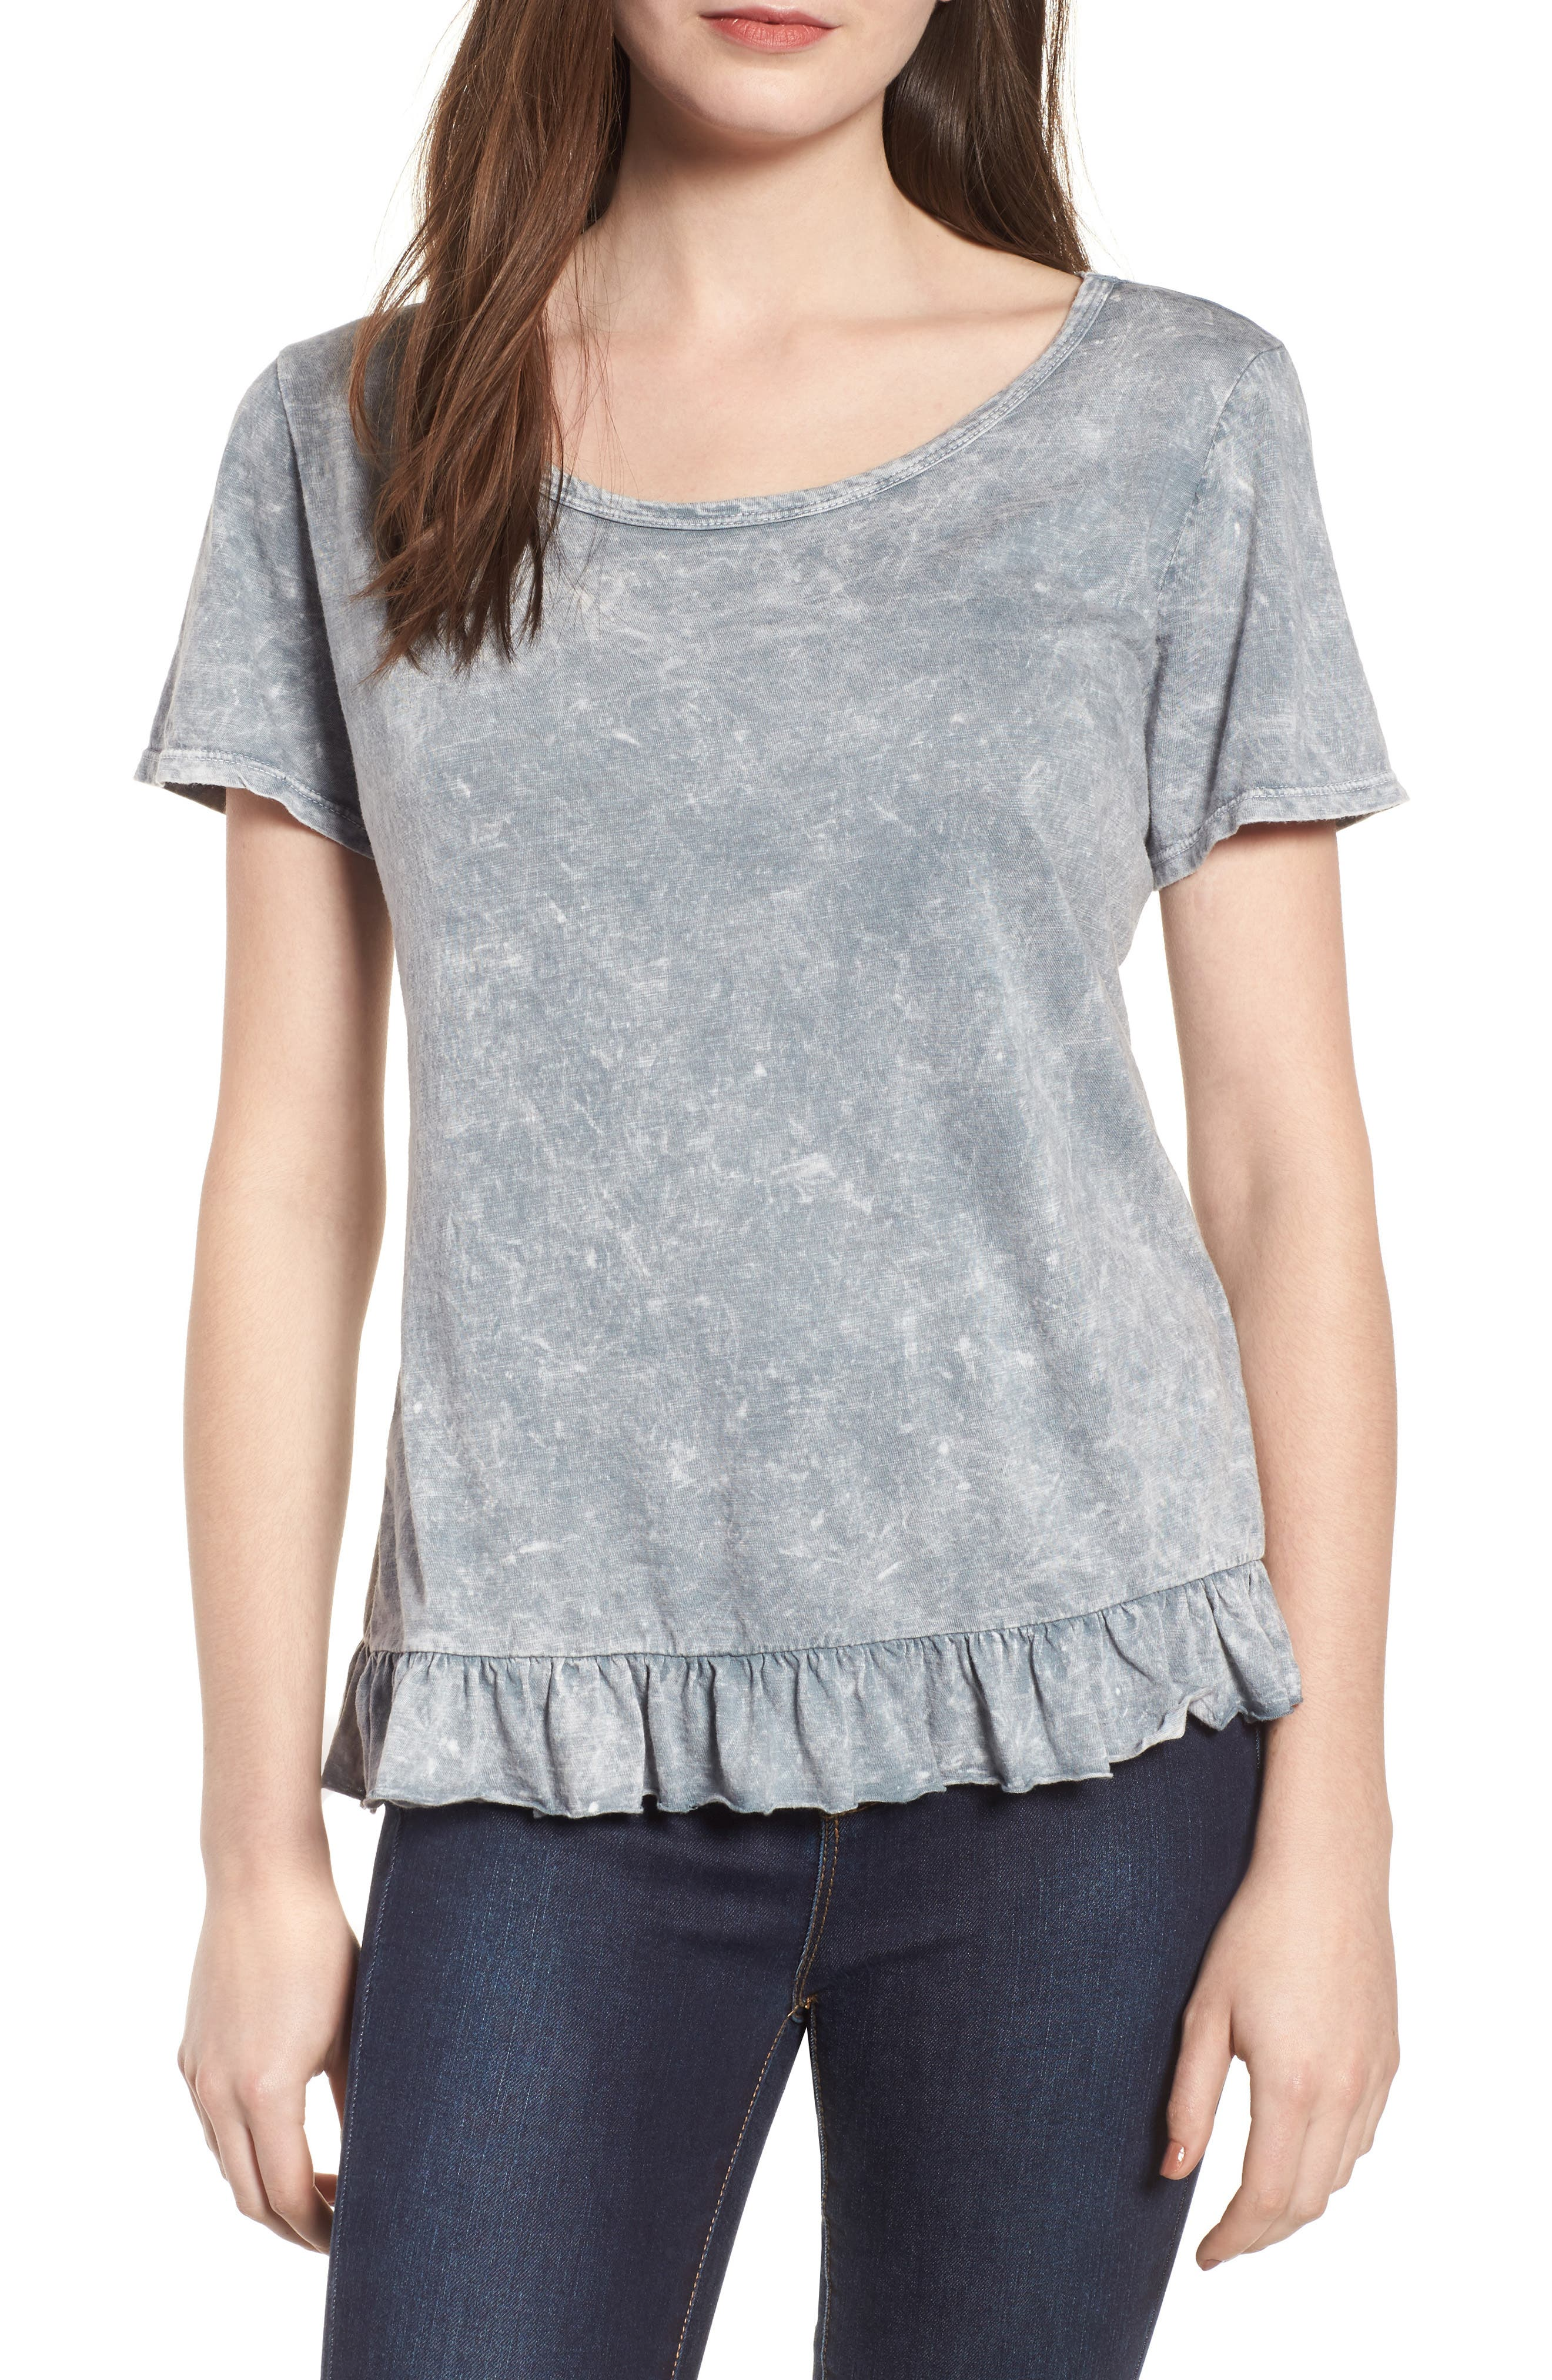 Alternate Image 1 Selected - Socialite Mineral Wash Ruffle Hem Tee